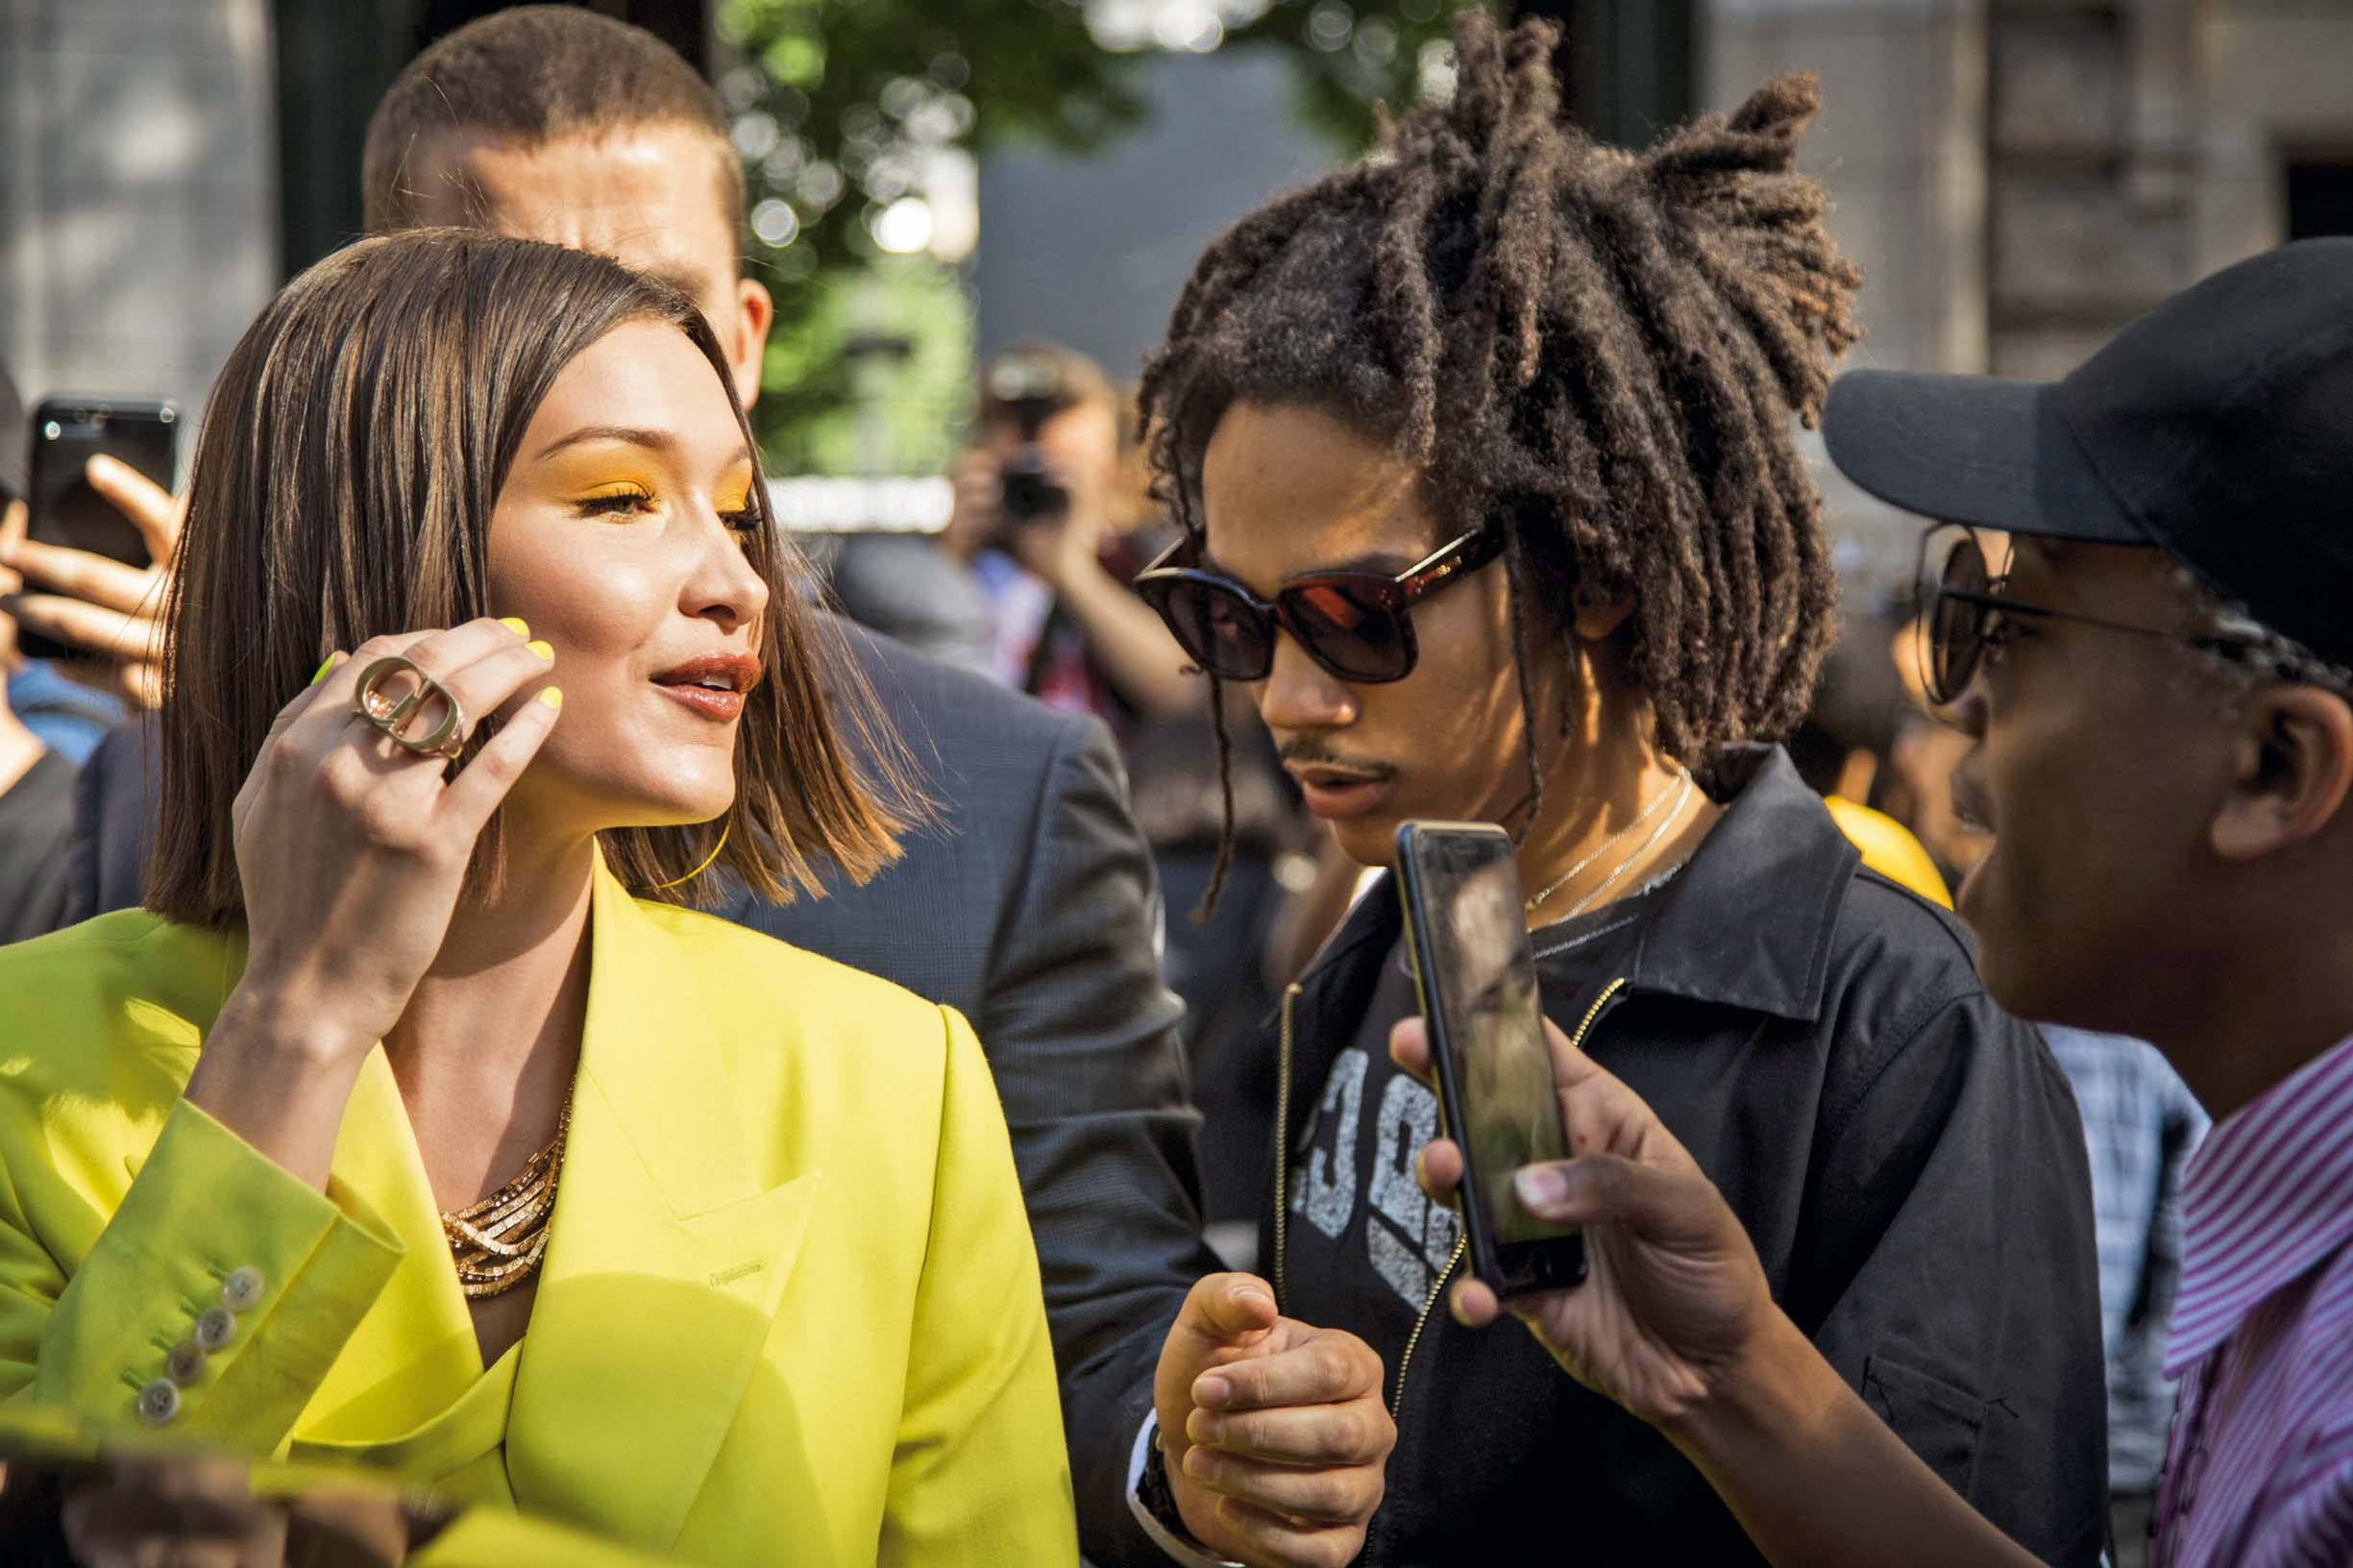 PARIS, FRANCE - JUNE 23: Bella Hadid and Luka Sabbat, are seen in the streets of Paris after the Dior Homme show, during Paris Men's Fashion Week Spring/Summer 2019  on June 23, 2018 in Paris, France. (Photo by Claudio Lavenia/GC Images)